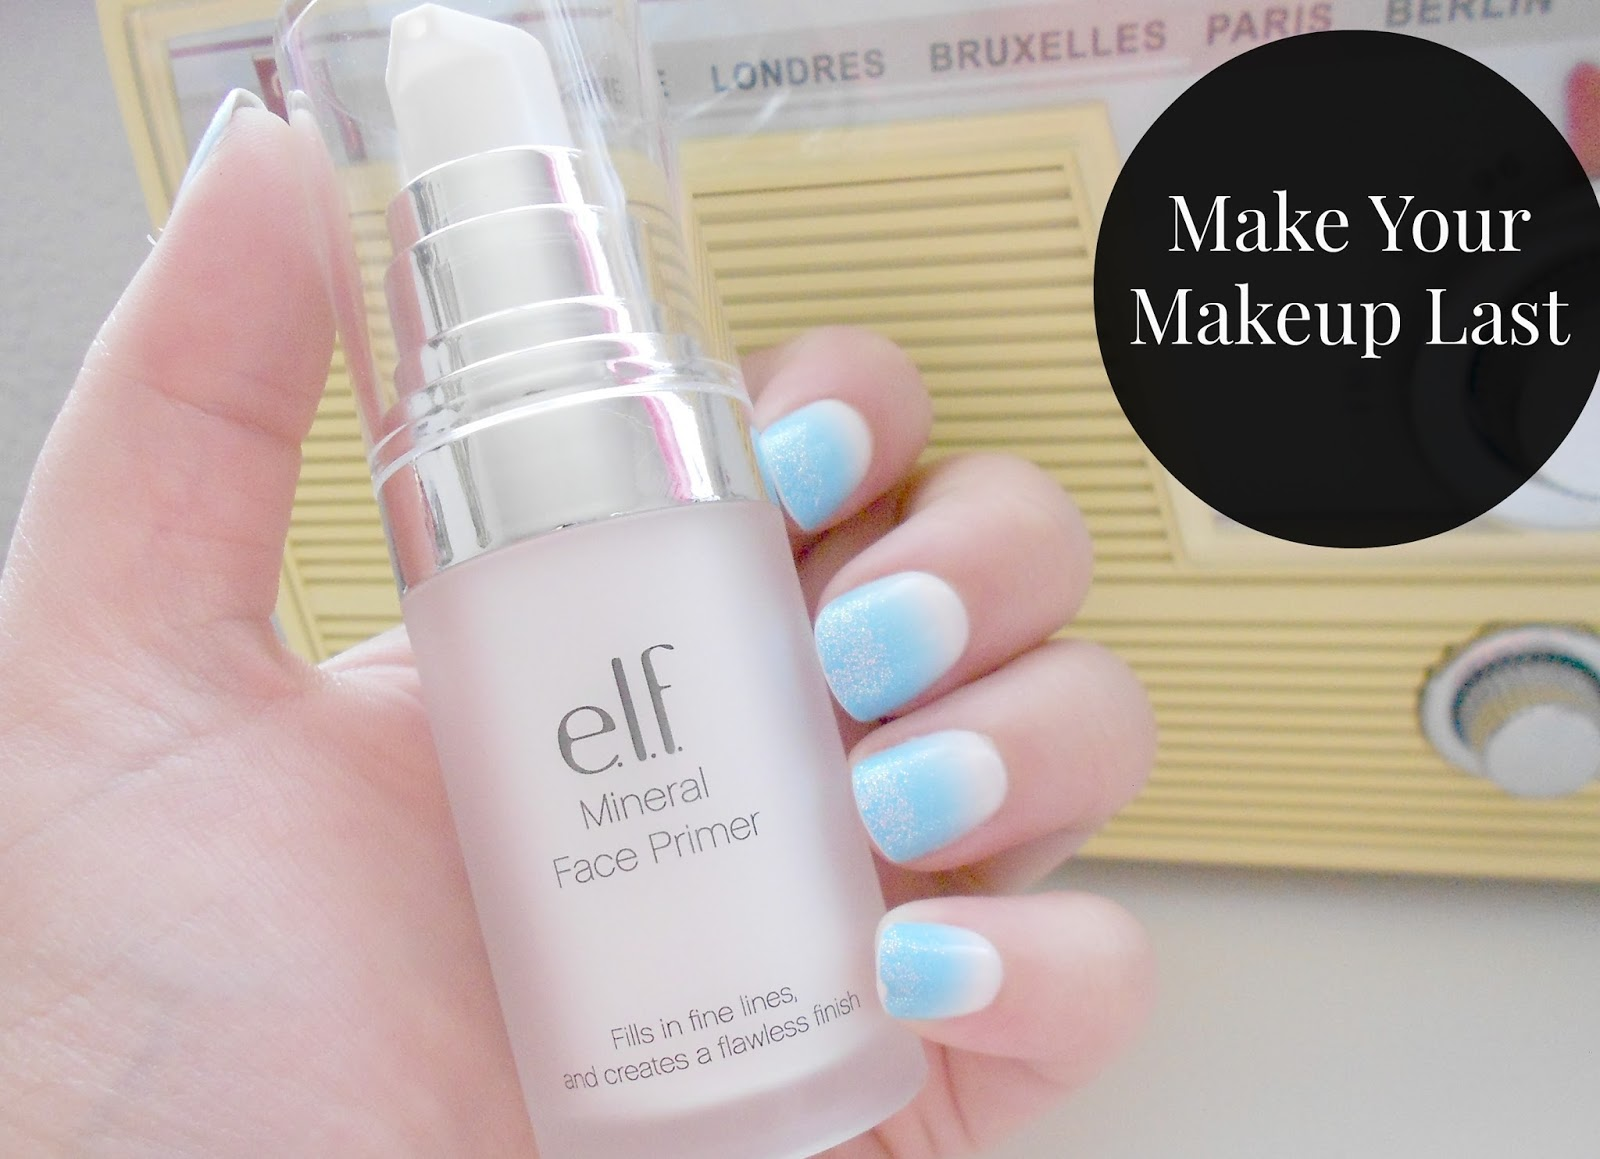 elf mineral primer dupe benefit porefessional review